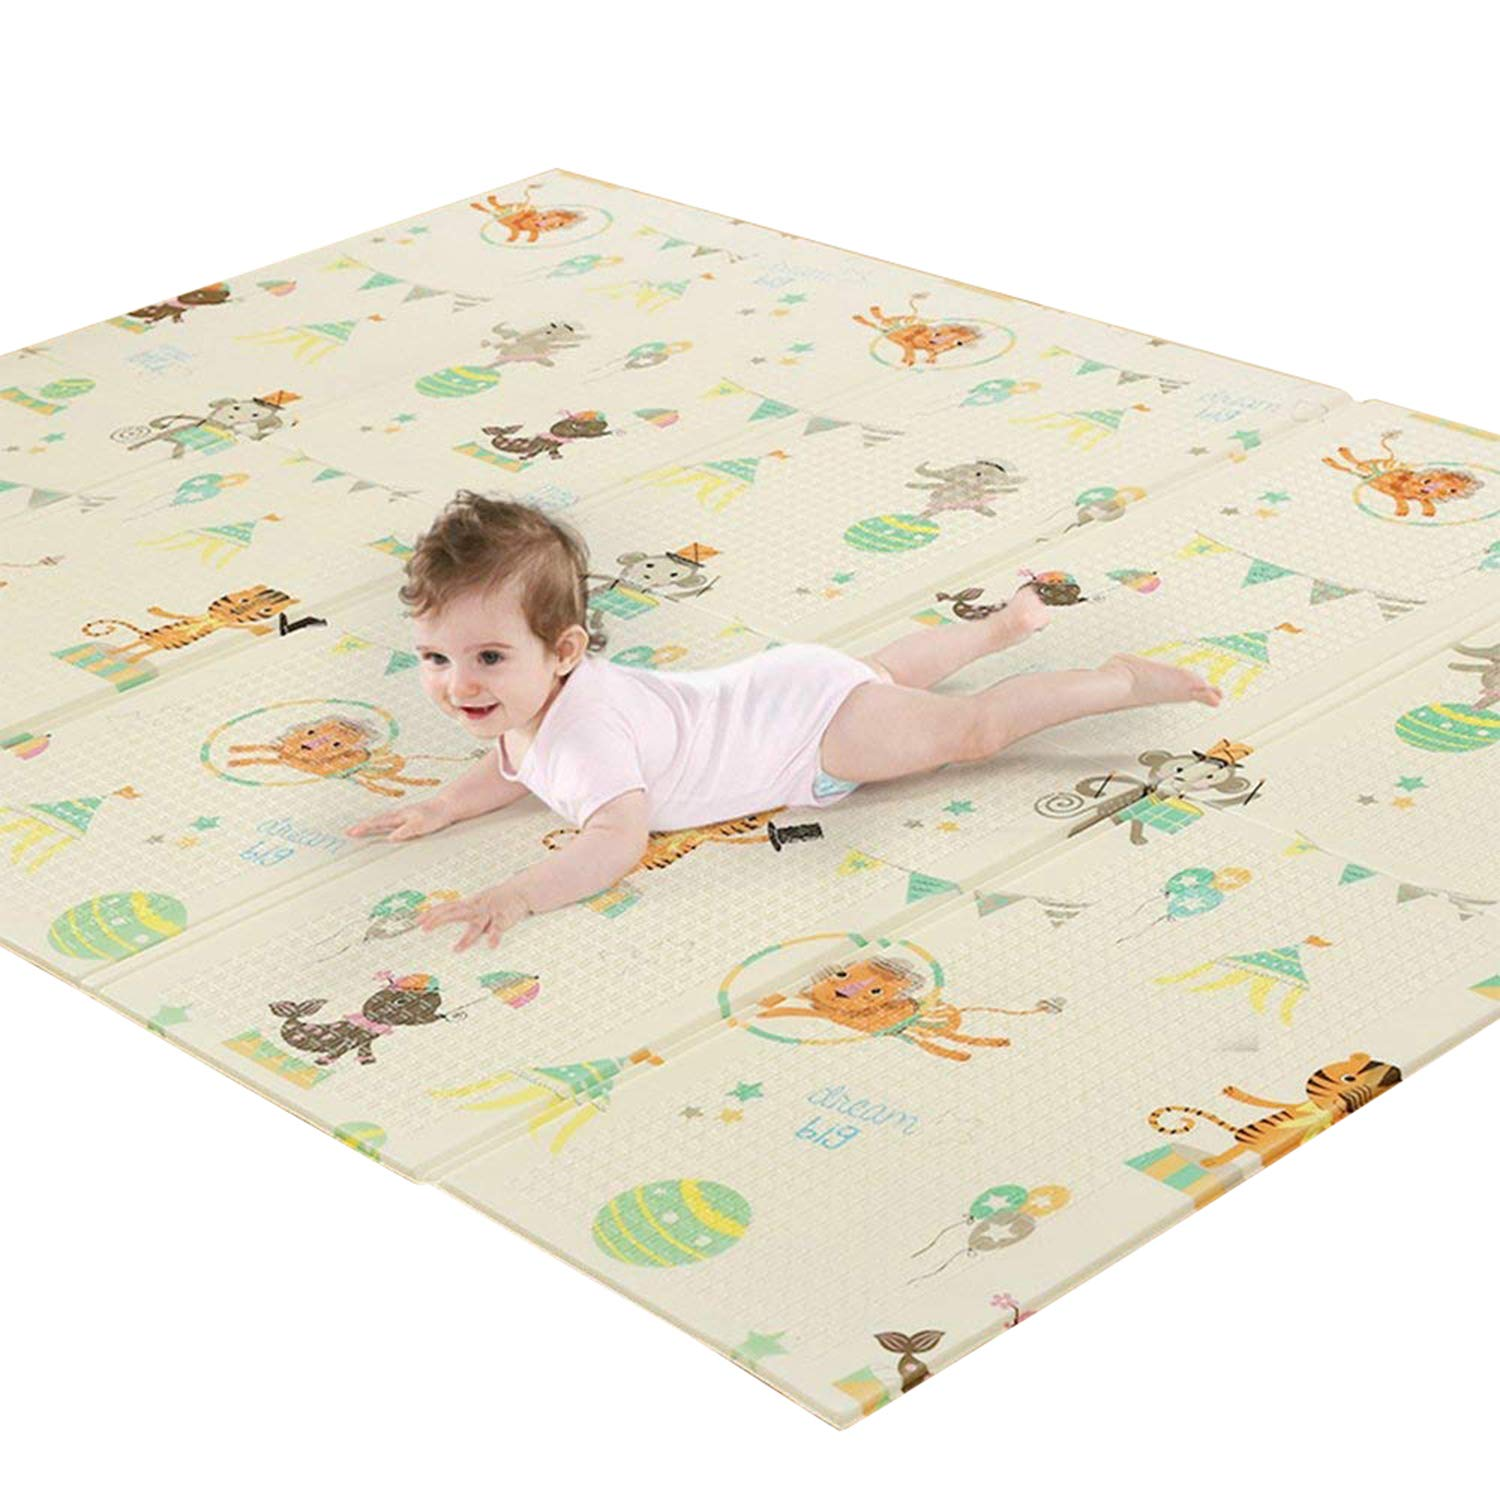 HAN-MM Baby play mat folding baby Care XPE Playmat Foam Floor Slip Extra Large Foam Reversible Waterproof Portable double sides Kids Baby Toddler Outdoor or Indoor Use Non Toxic 78x57.x0.4in (Deerlet)